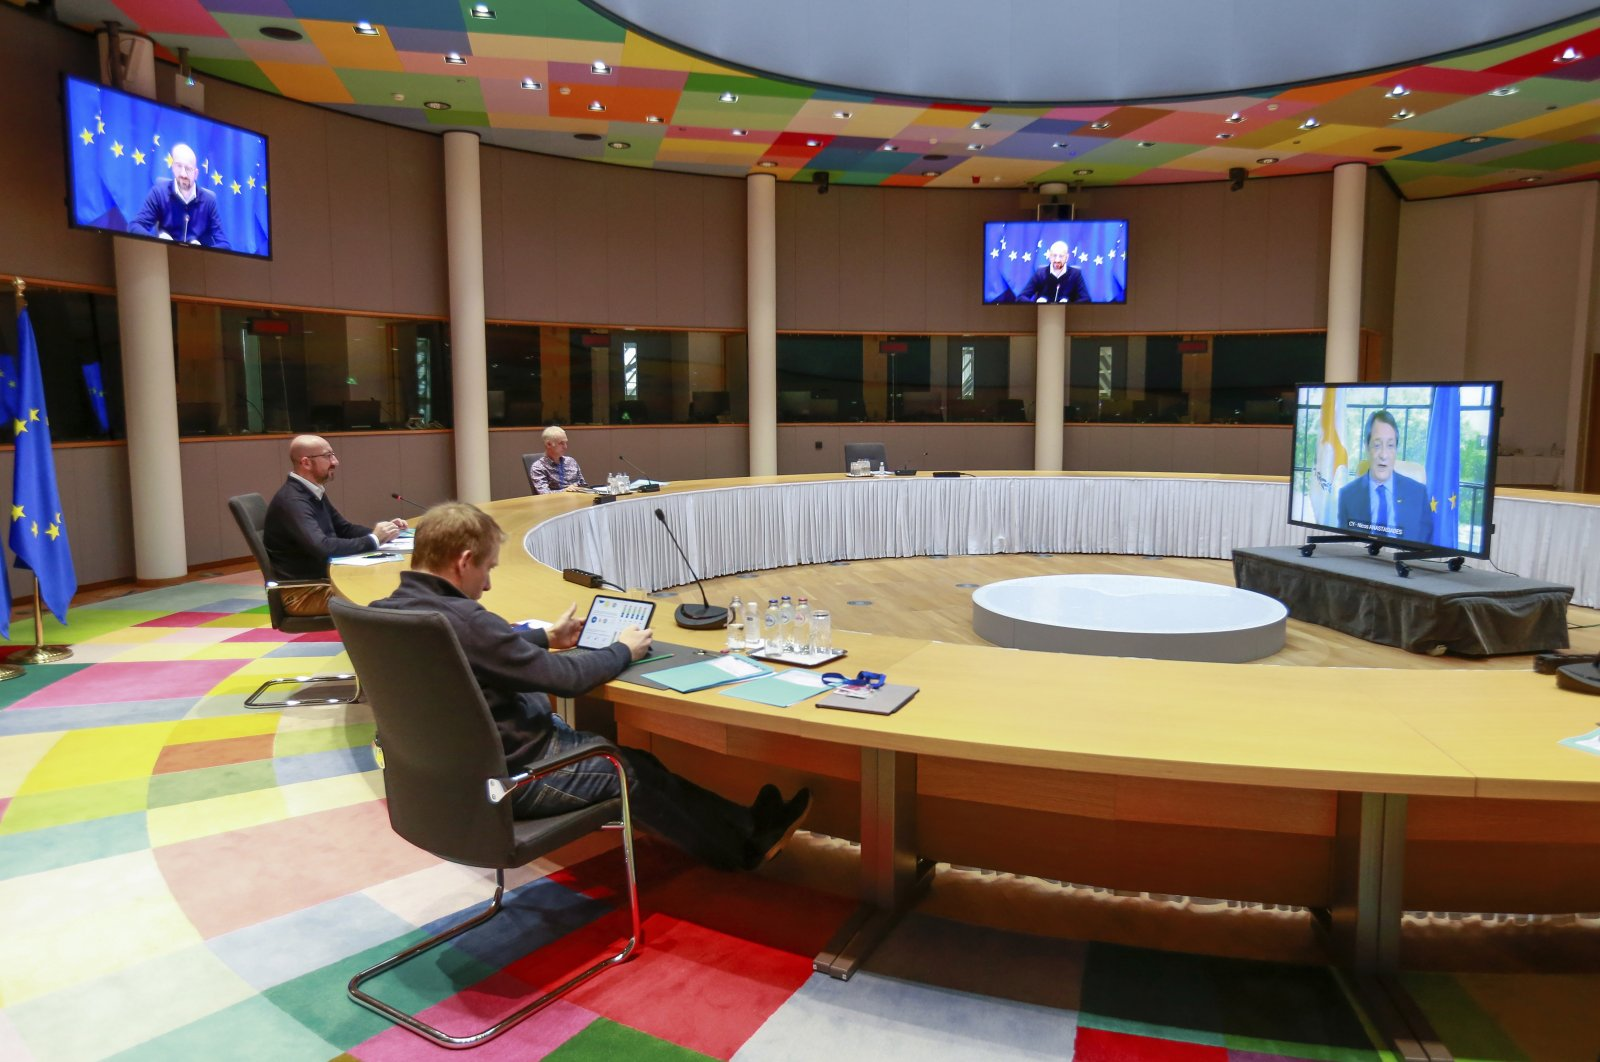 European Council President Charles Michel (L) talks to Cyprus' President Nicos Anastasiades (R) on the screen, during an online meeting at the European Council headquarters in Brussels, Belgium, Friday, April 2, 2021. (Pool Photo via AP)